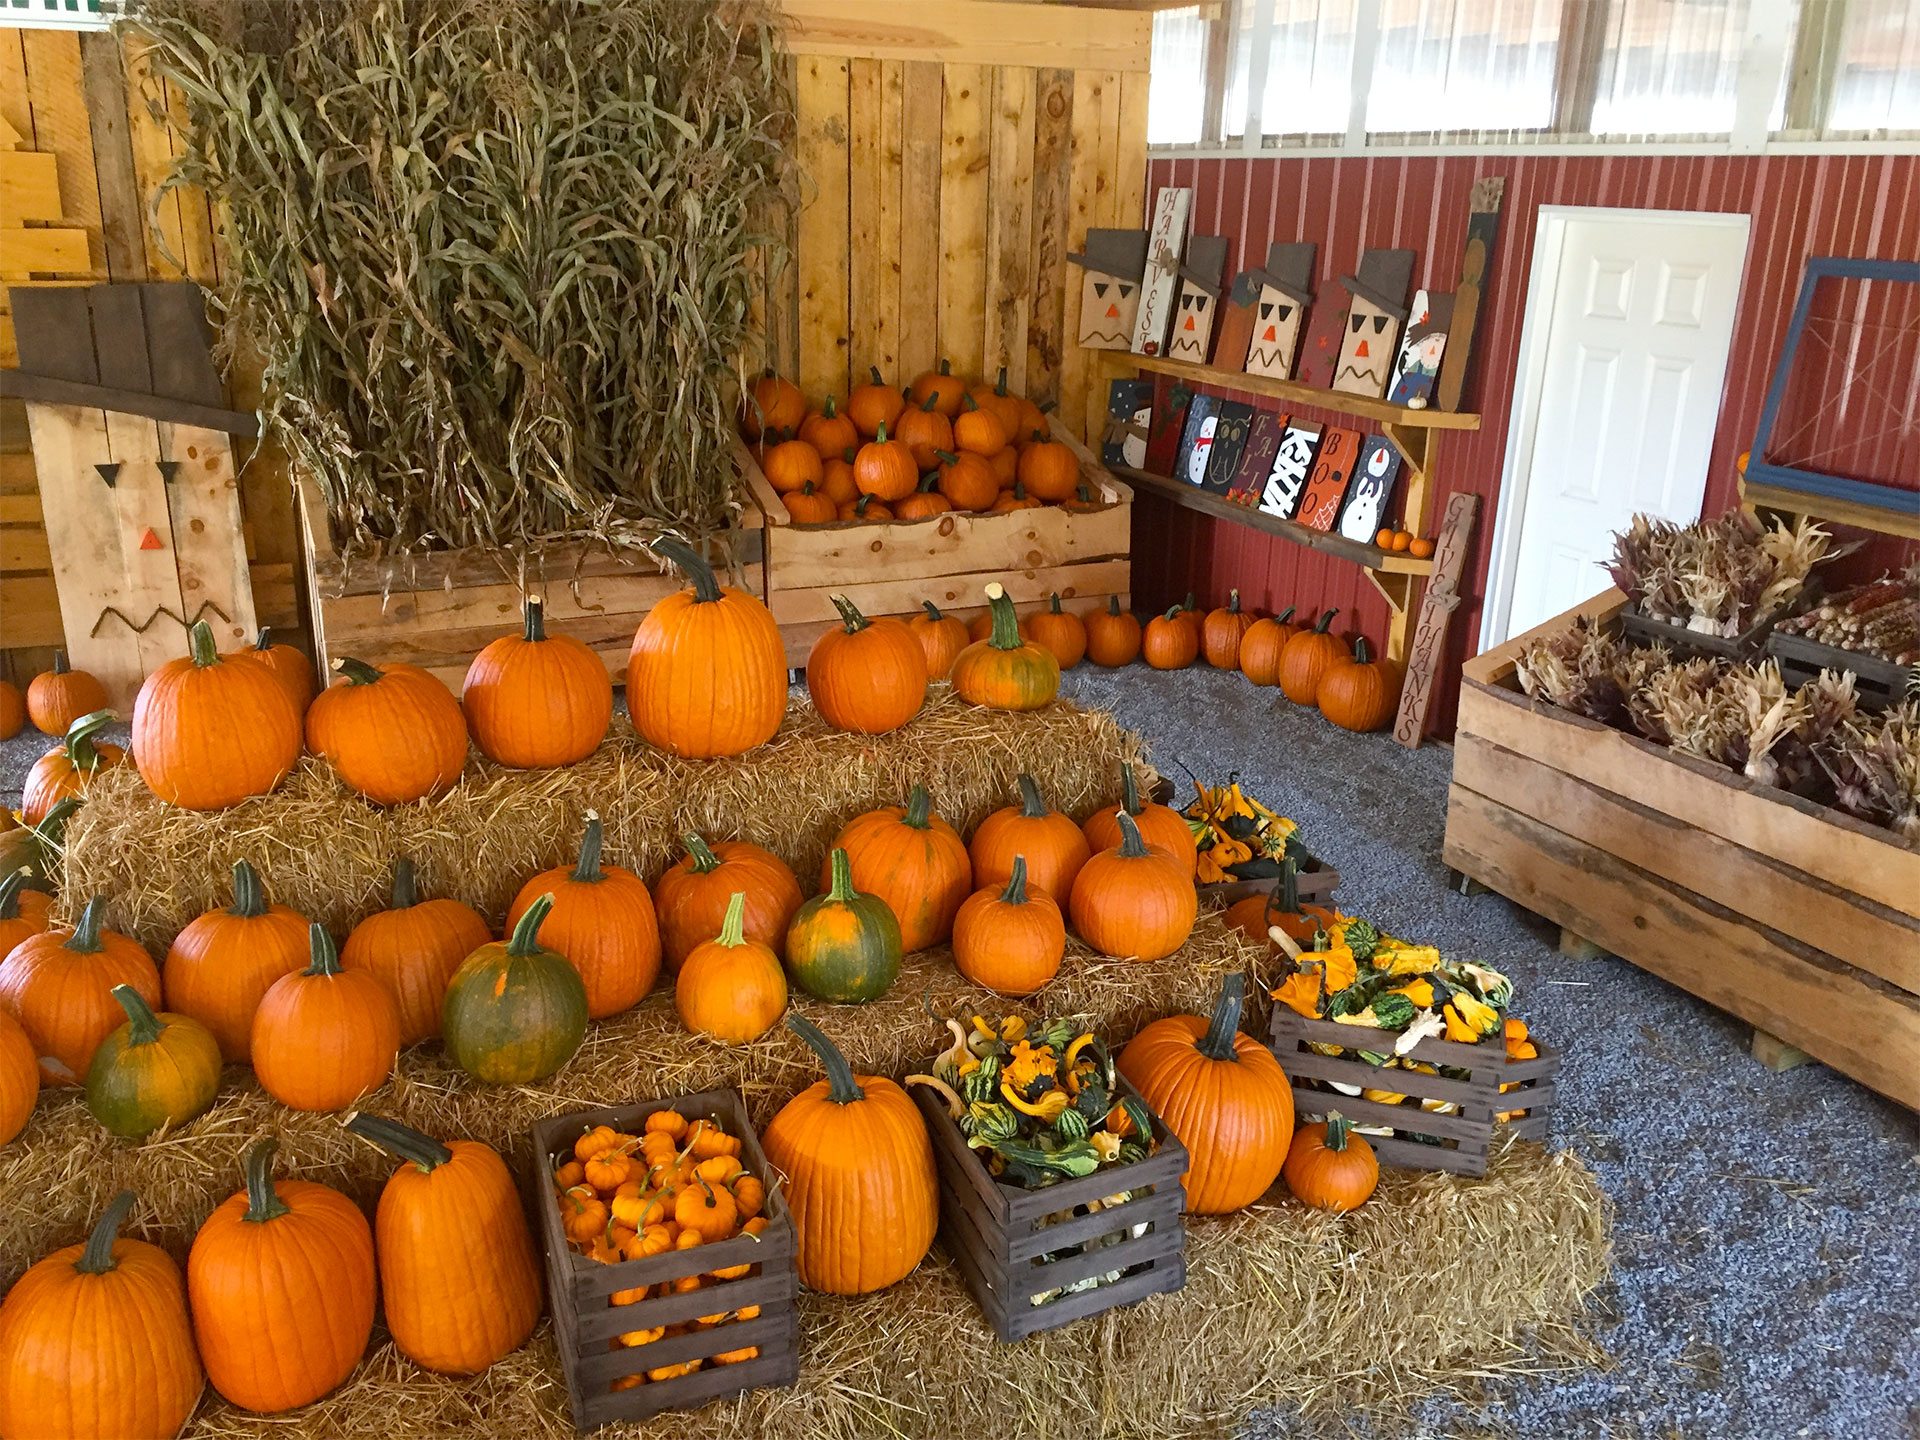 Pumpkins on a haybales